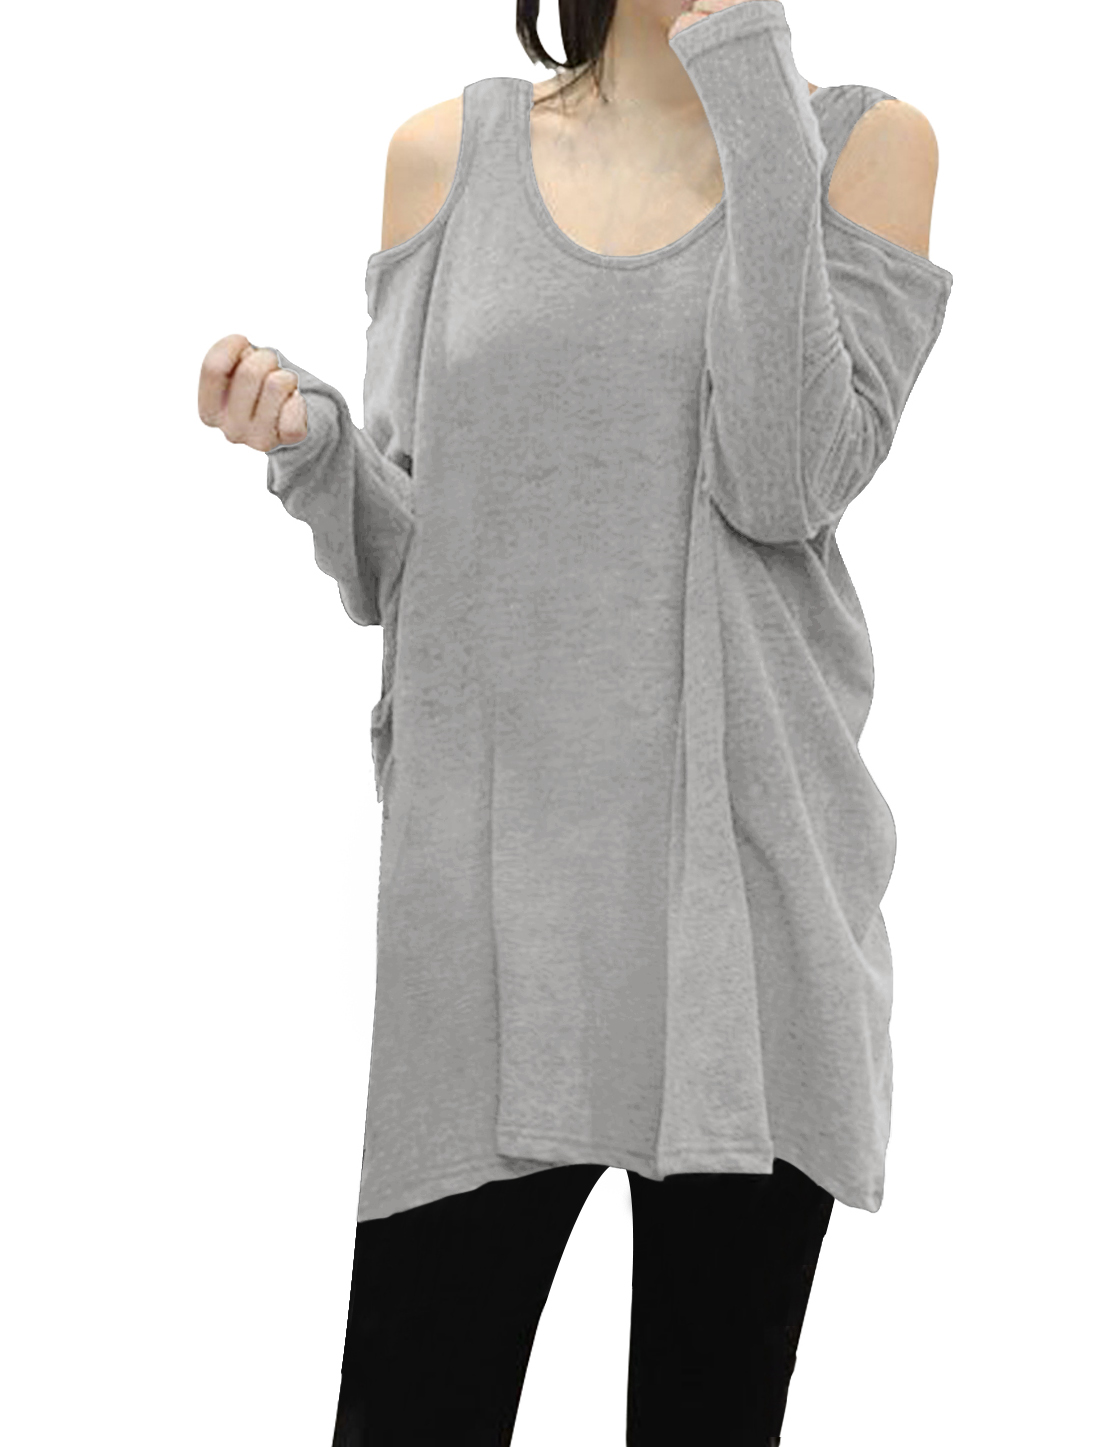 Ladies Scoop Neck Cut Out Shoulder Oversized Tunic Top Light Gray XL